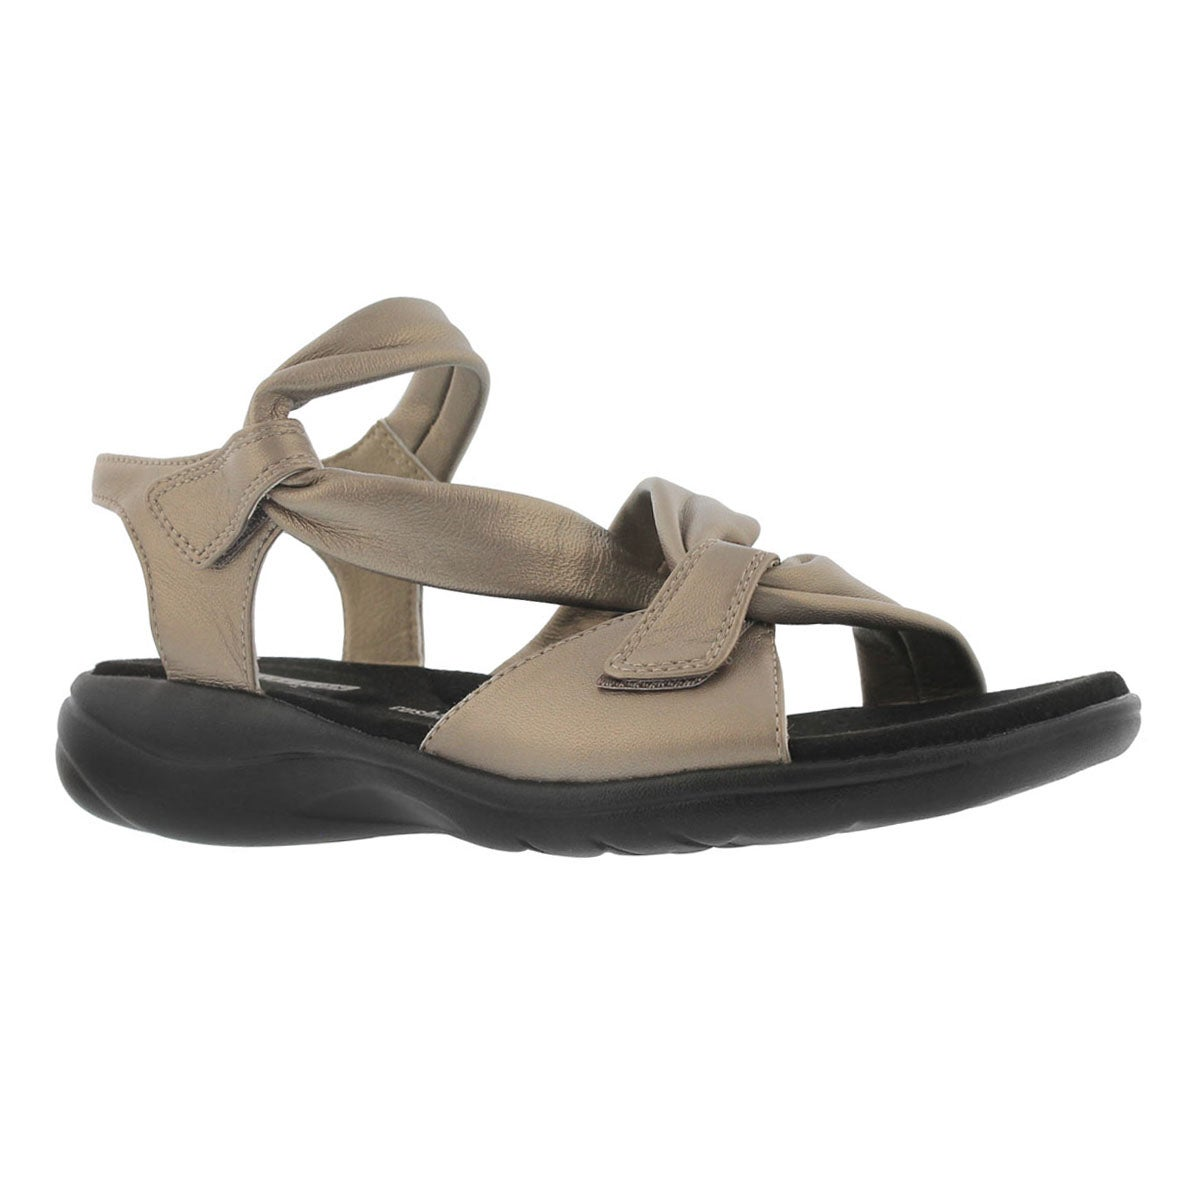 Women's SAYLIE MOON pewter casual sandal